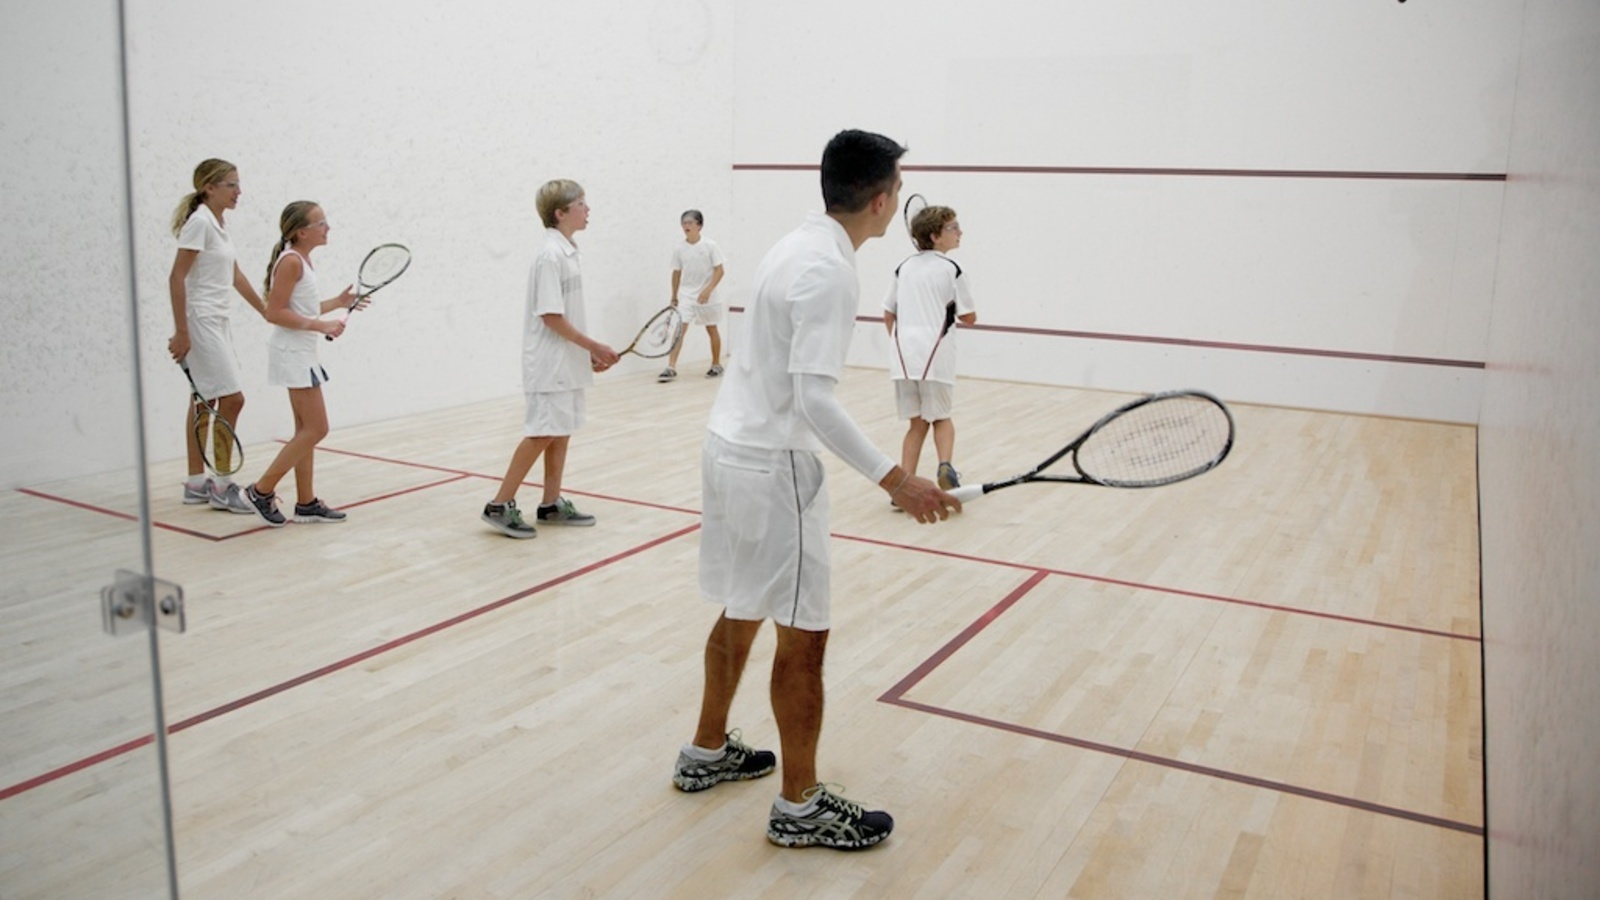 Learning Squash At John's Island